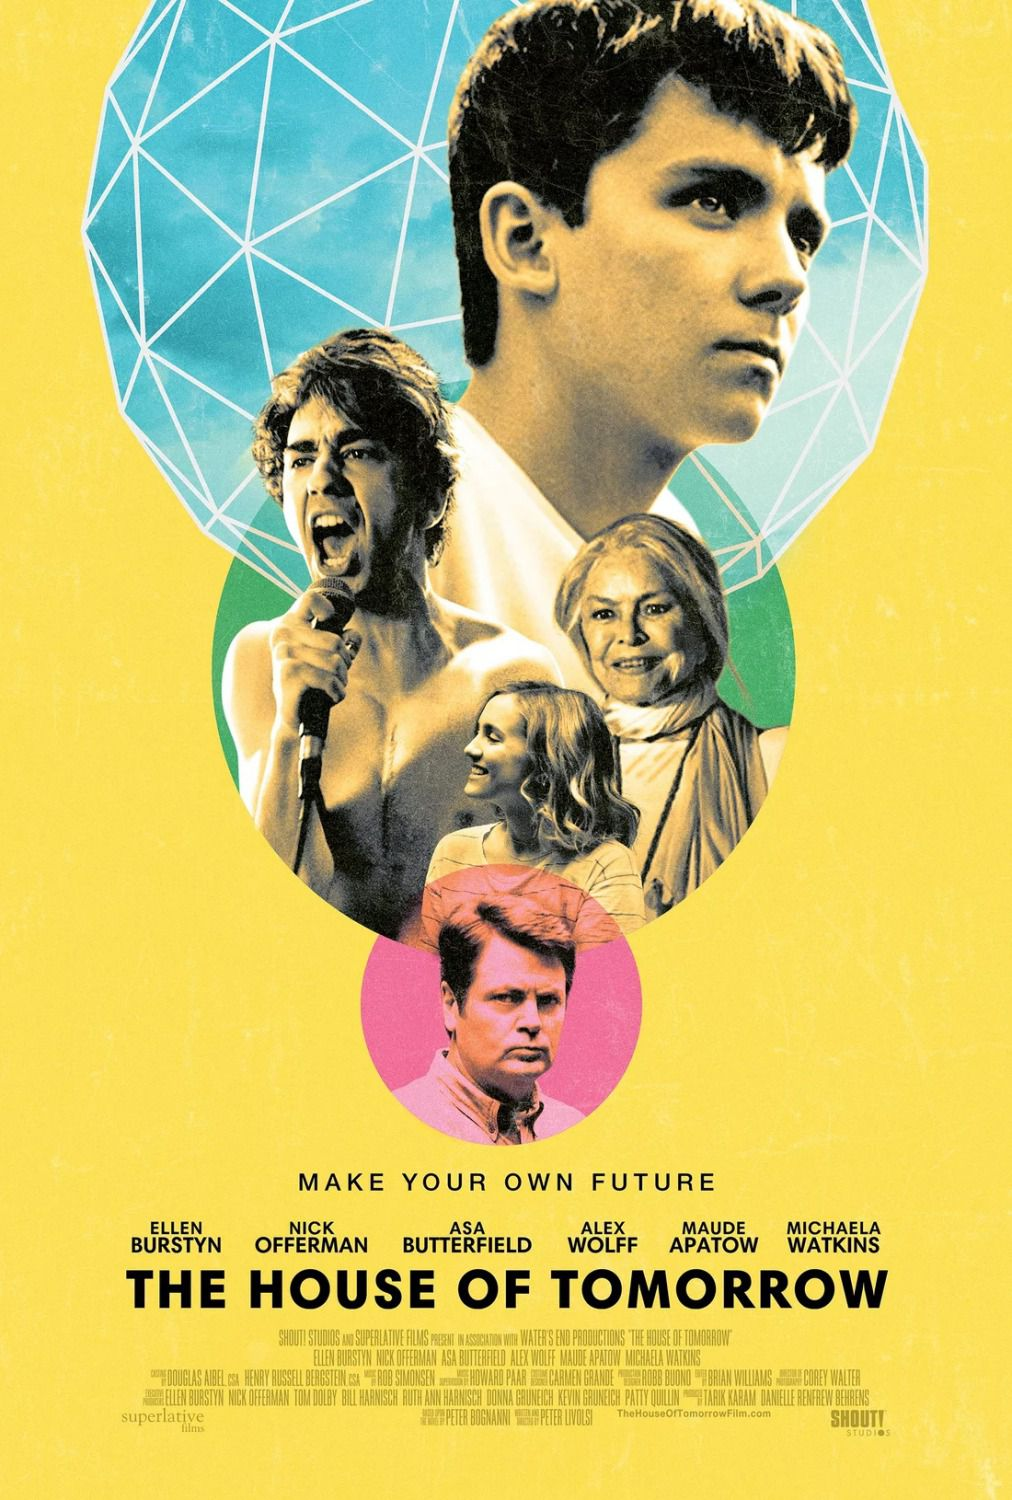 The House of Tomorrow - Cast: Ellen Burstyn, Nick Offerman, Asa Butterfield, Alex Wolff, Maude Apatow, Michaela Watkins - poster